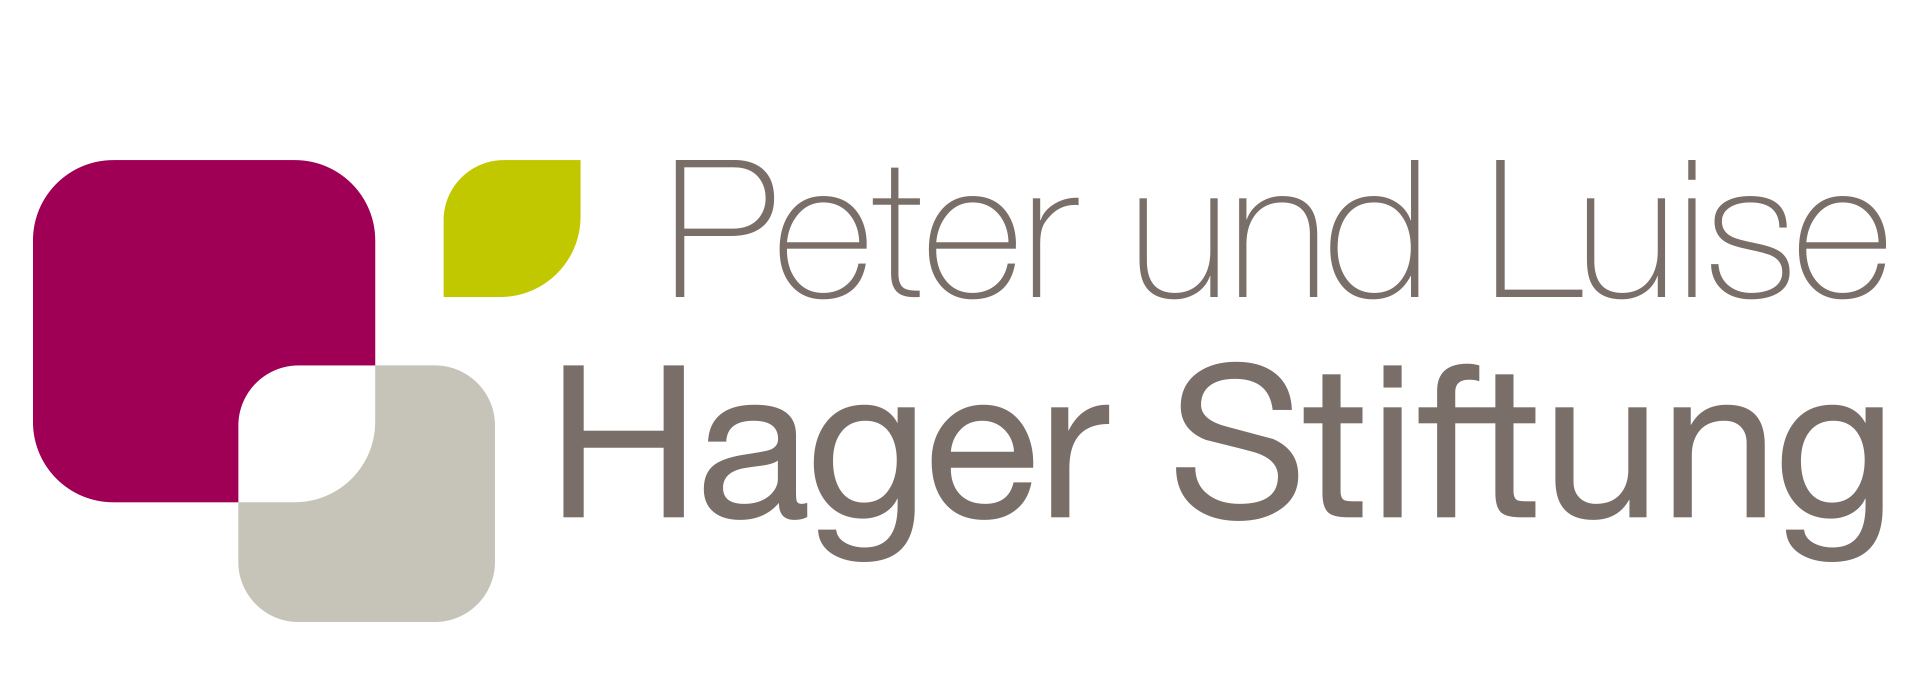 Hager-Stiftung